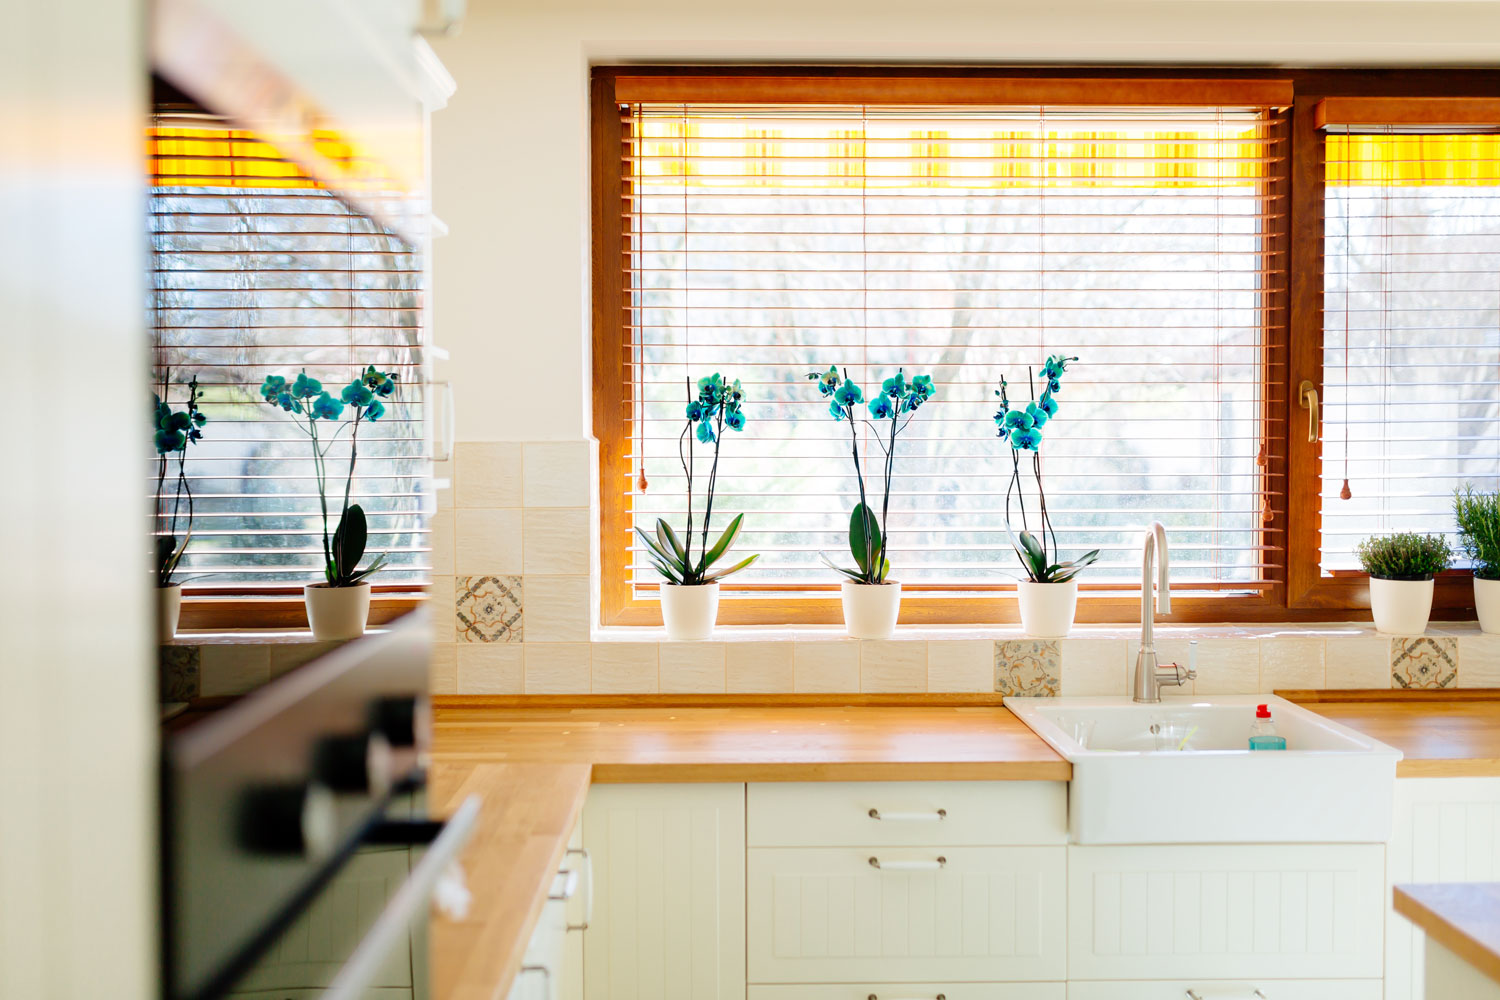 A bright modern kitchen with warm orange colour blinds and overlooking the frontyard